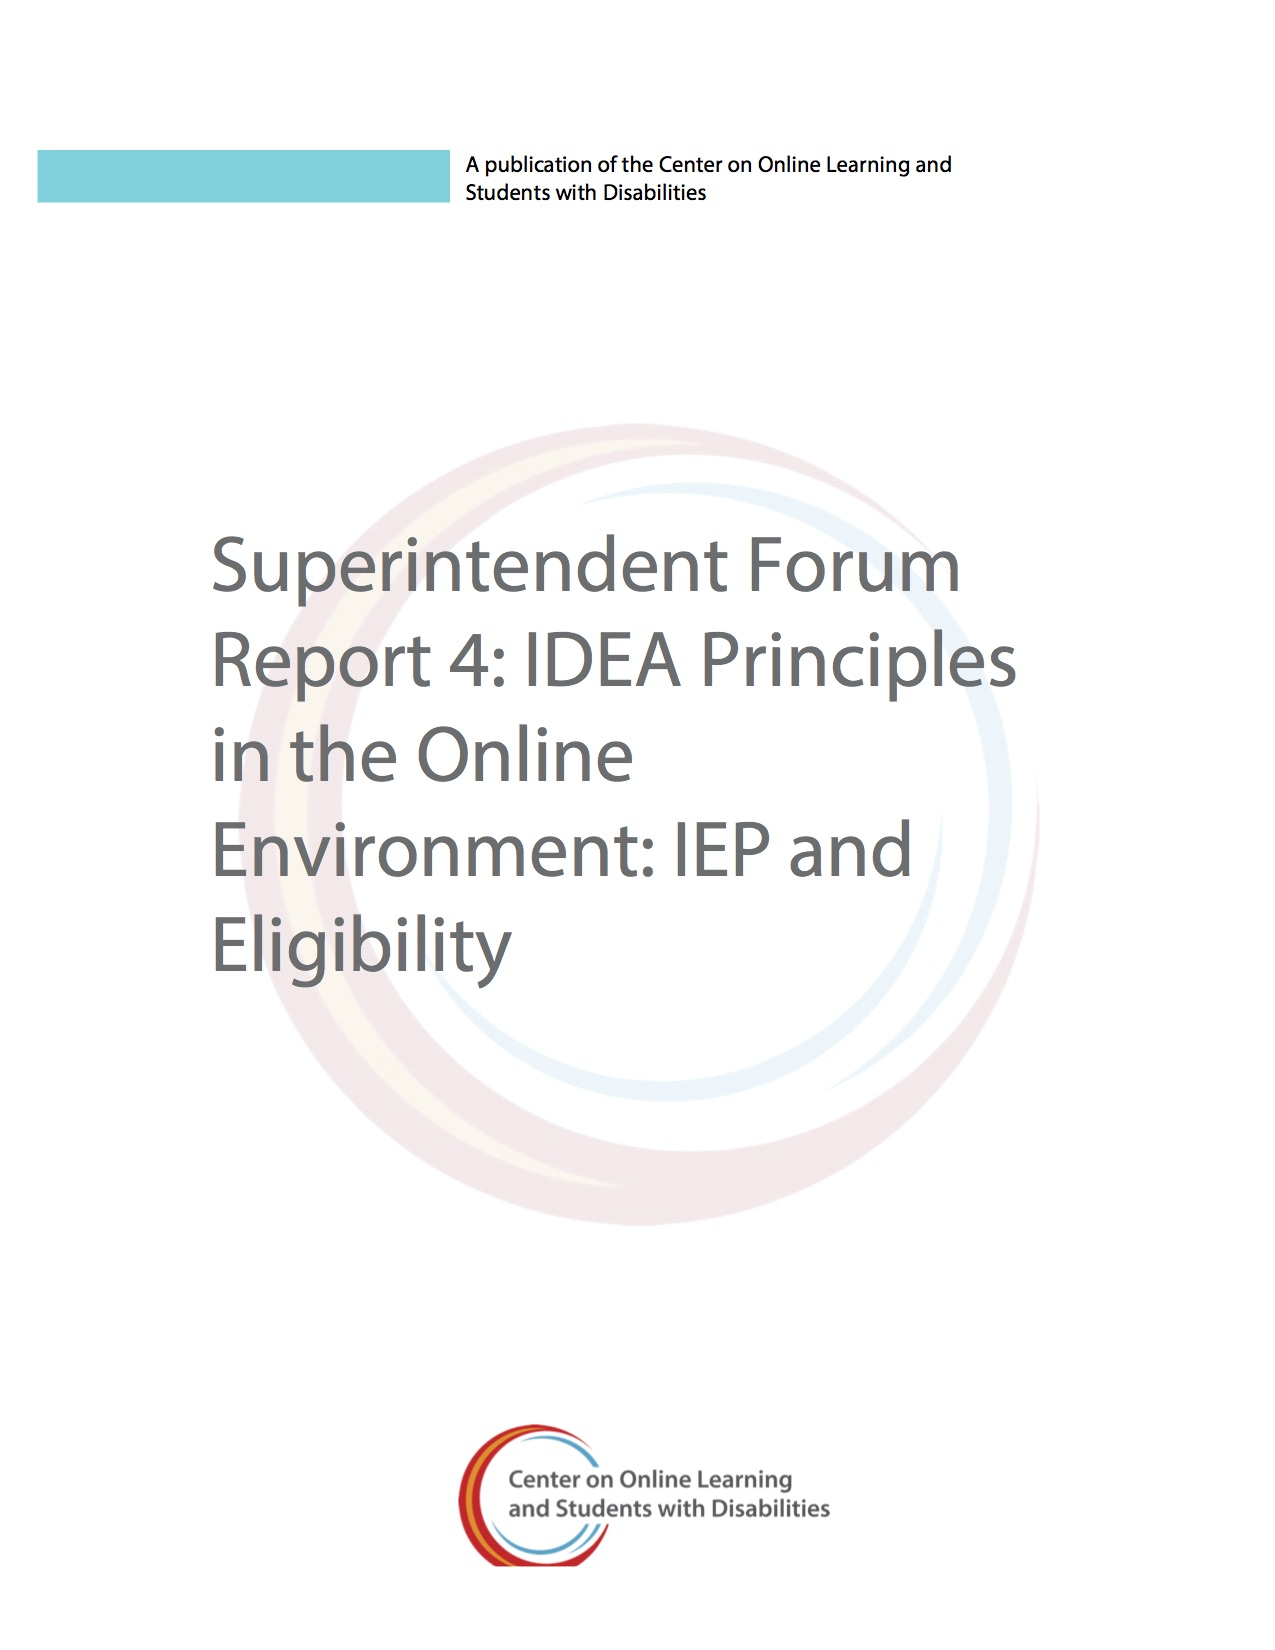 Superintendent Forum Report 4: IDEA Principles In The Online Environment: IEP And Eligibility